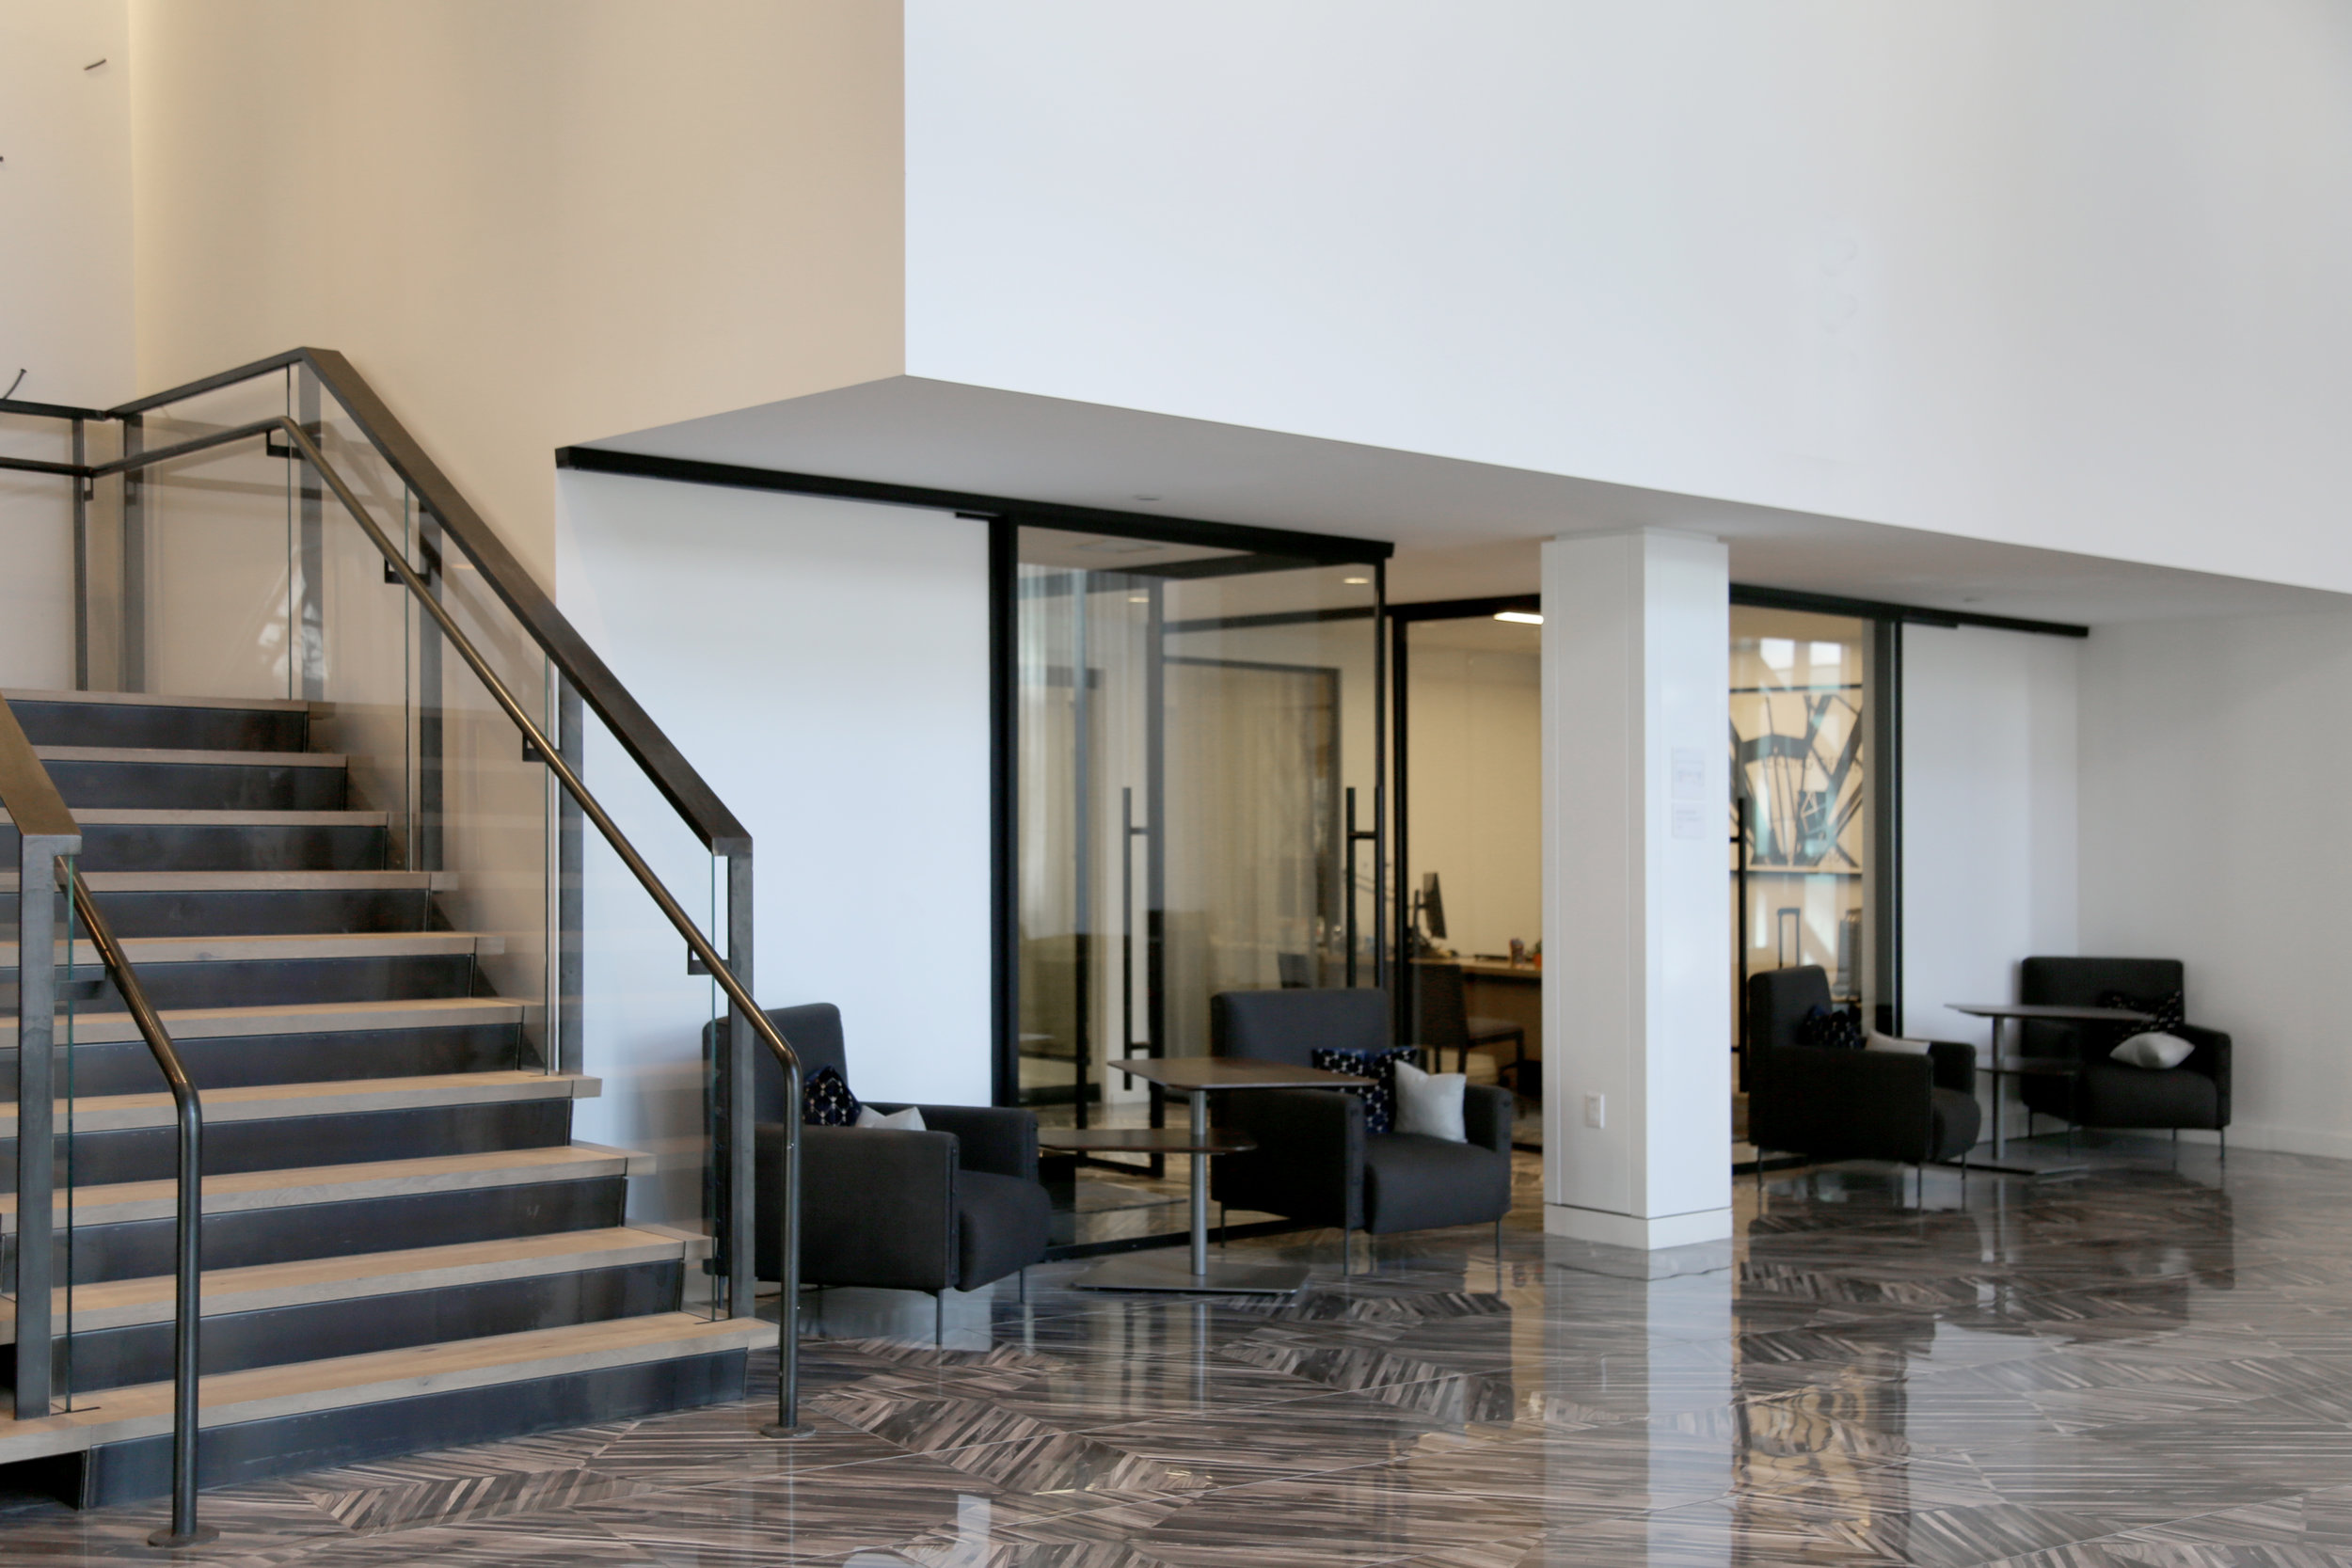 Leasing Office Glass Front Aluminum Demountable System - Spaceworks AI.jpg